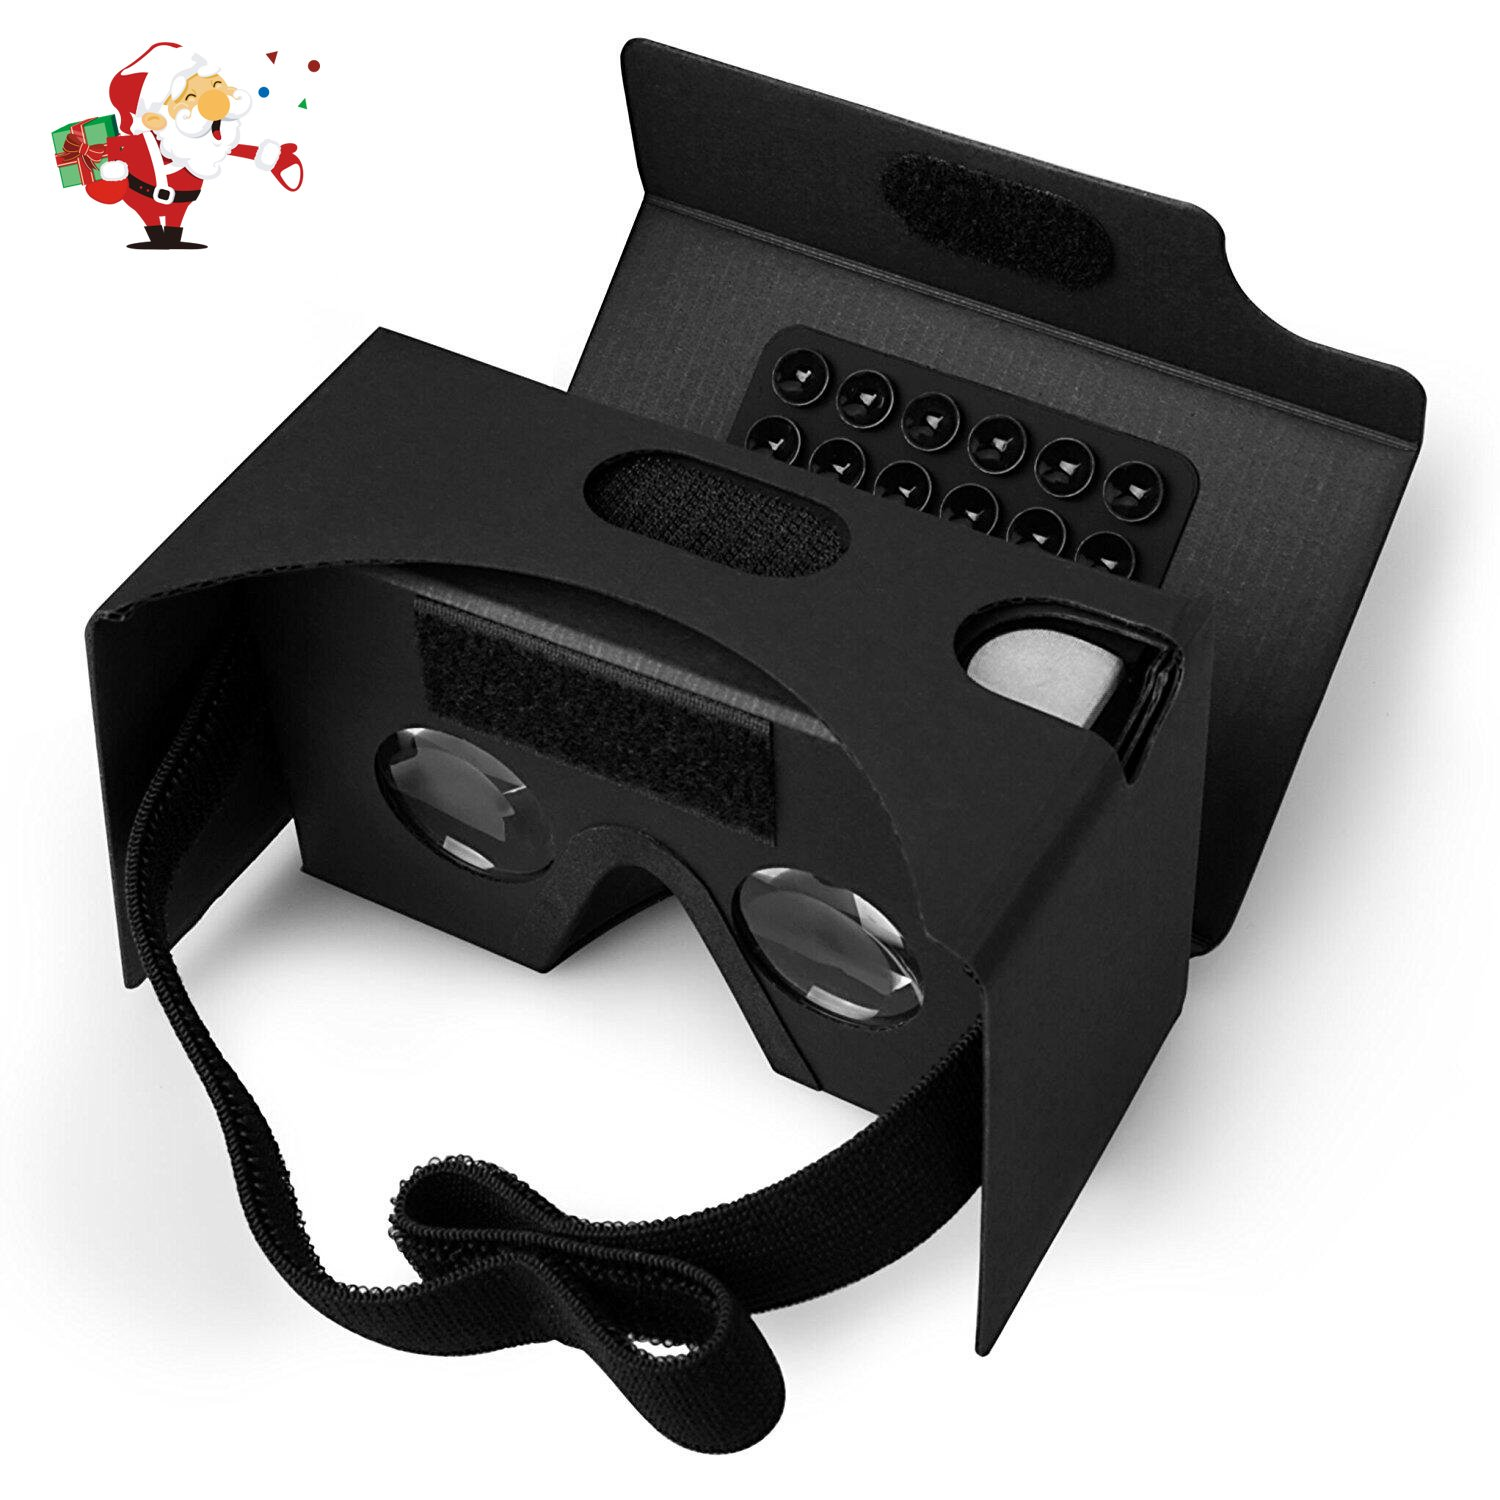 Google Cardboard, Splaks 3D VR Virtual Reality Glasses V2 with Sucker Head Strap Forehead Pad Nose Pad and Big Lens for Android and Apple Device Up to 6 Inch Easy Setup DIY Kit